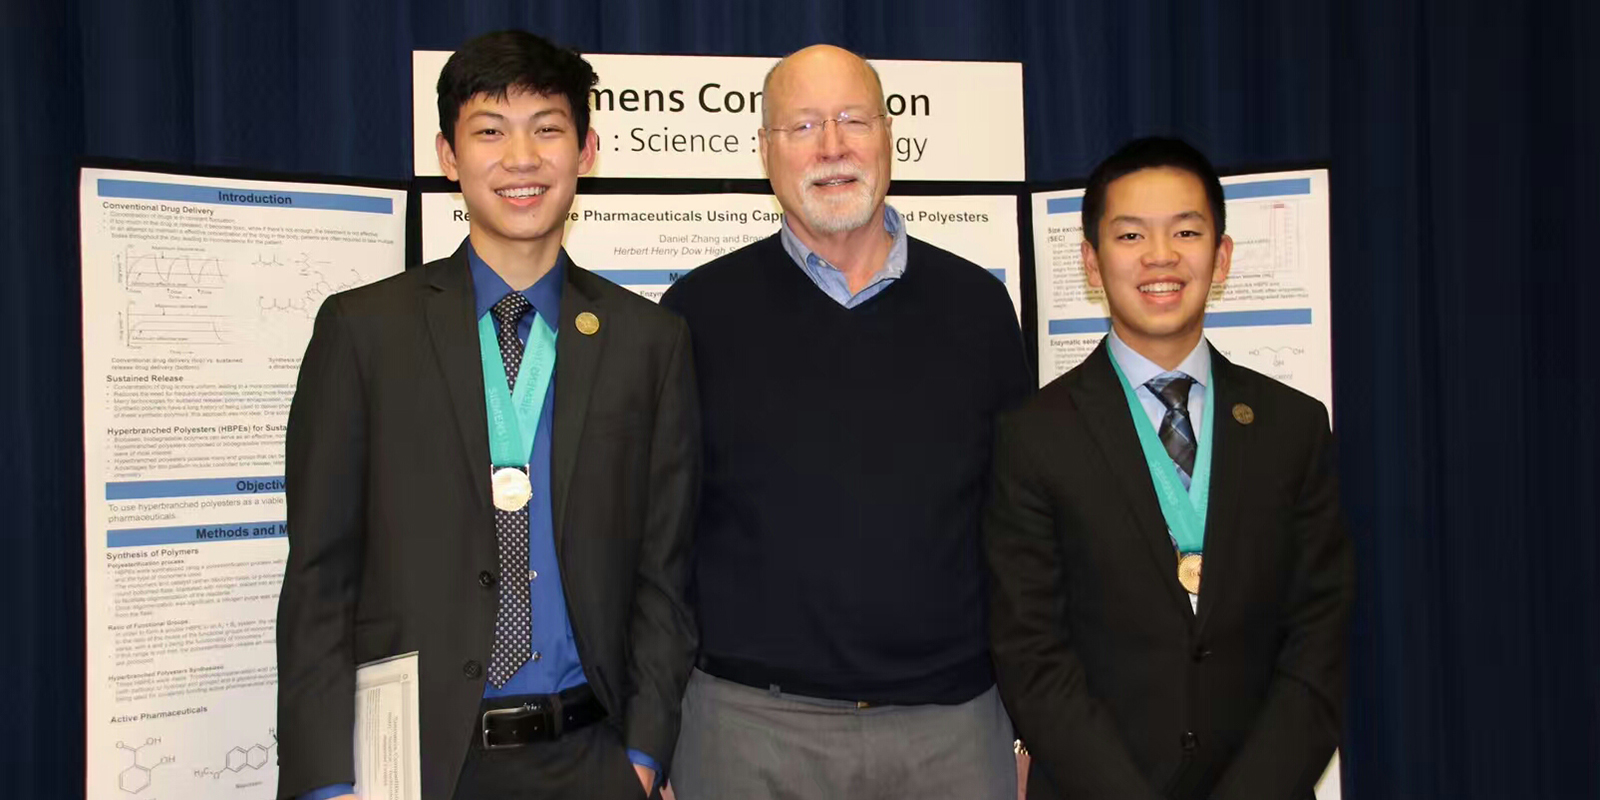 Group photo with two students and mentor at science competition